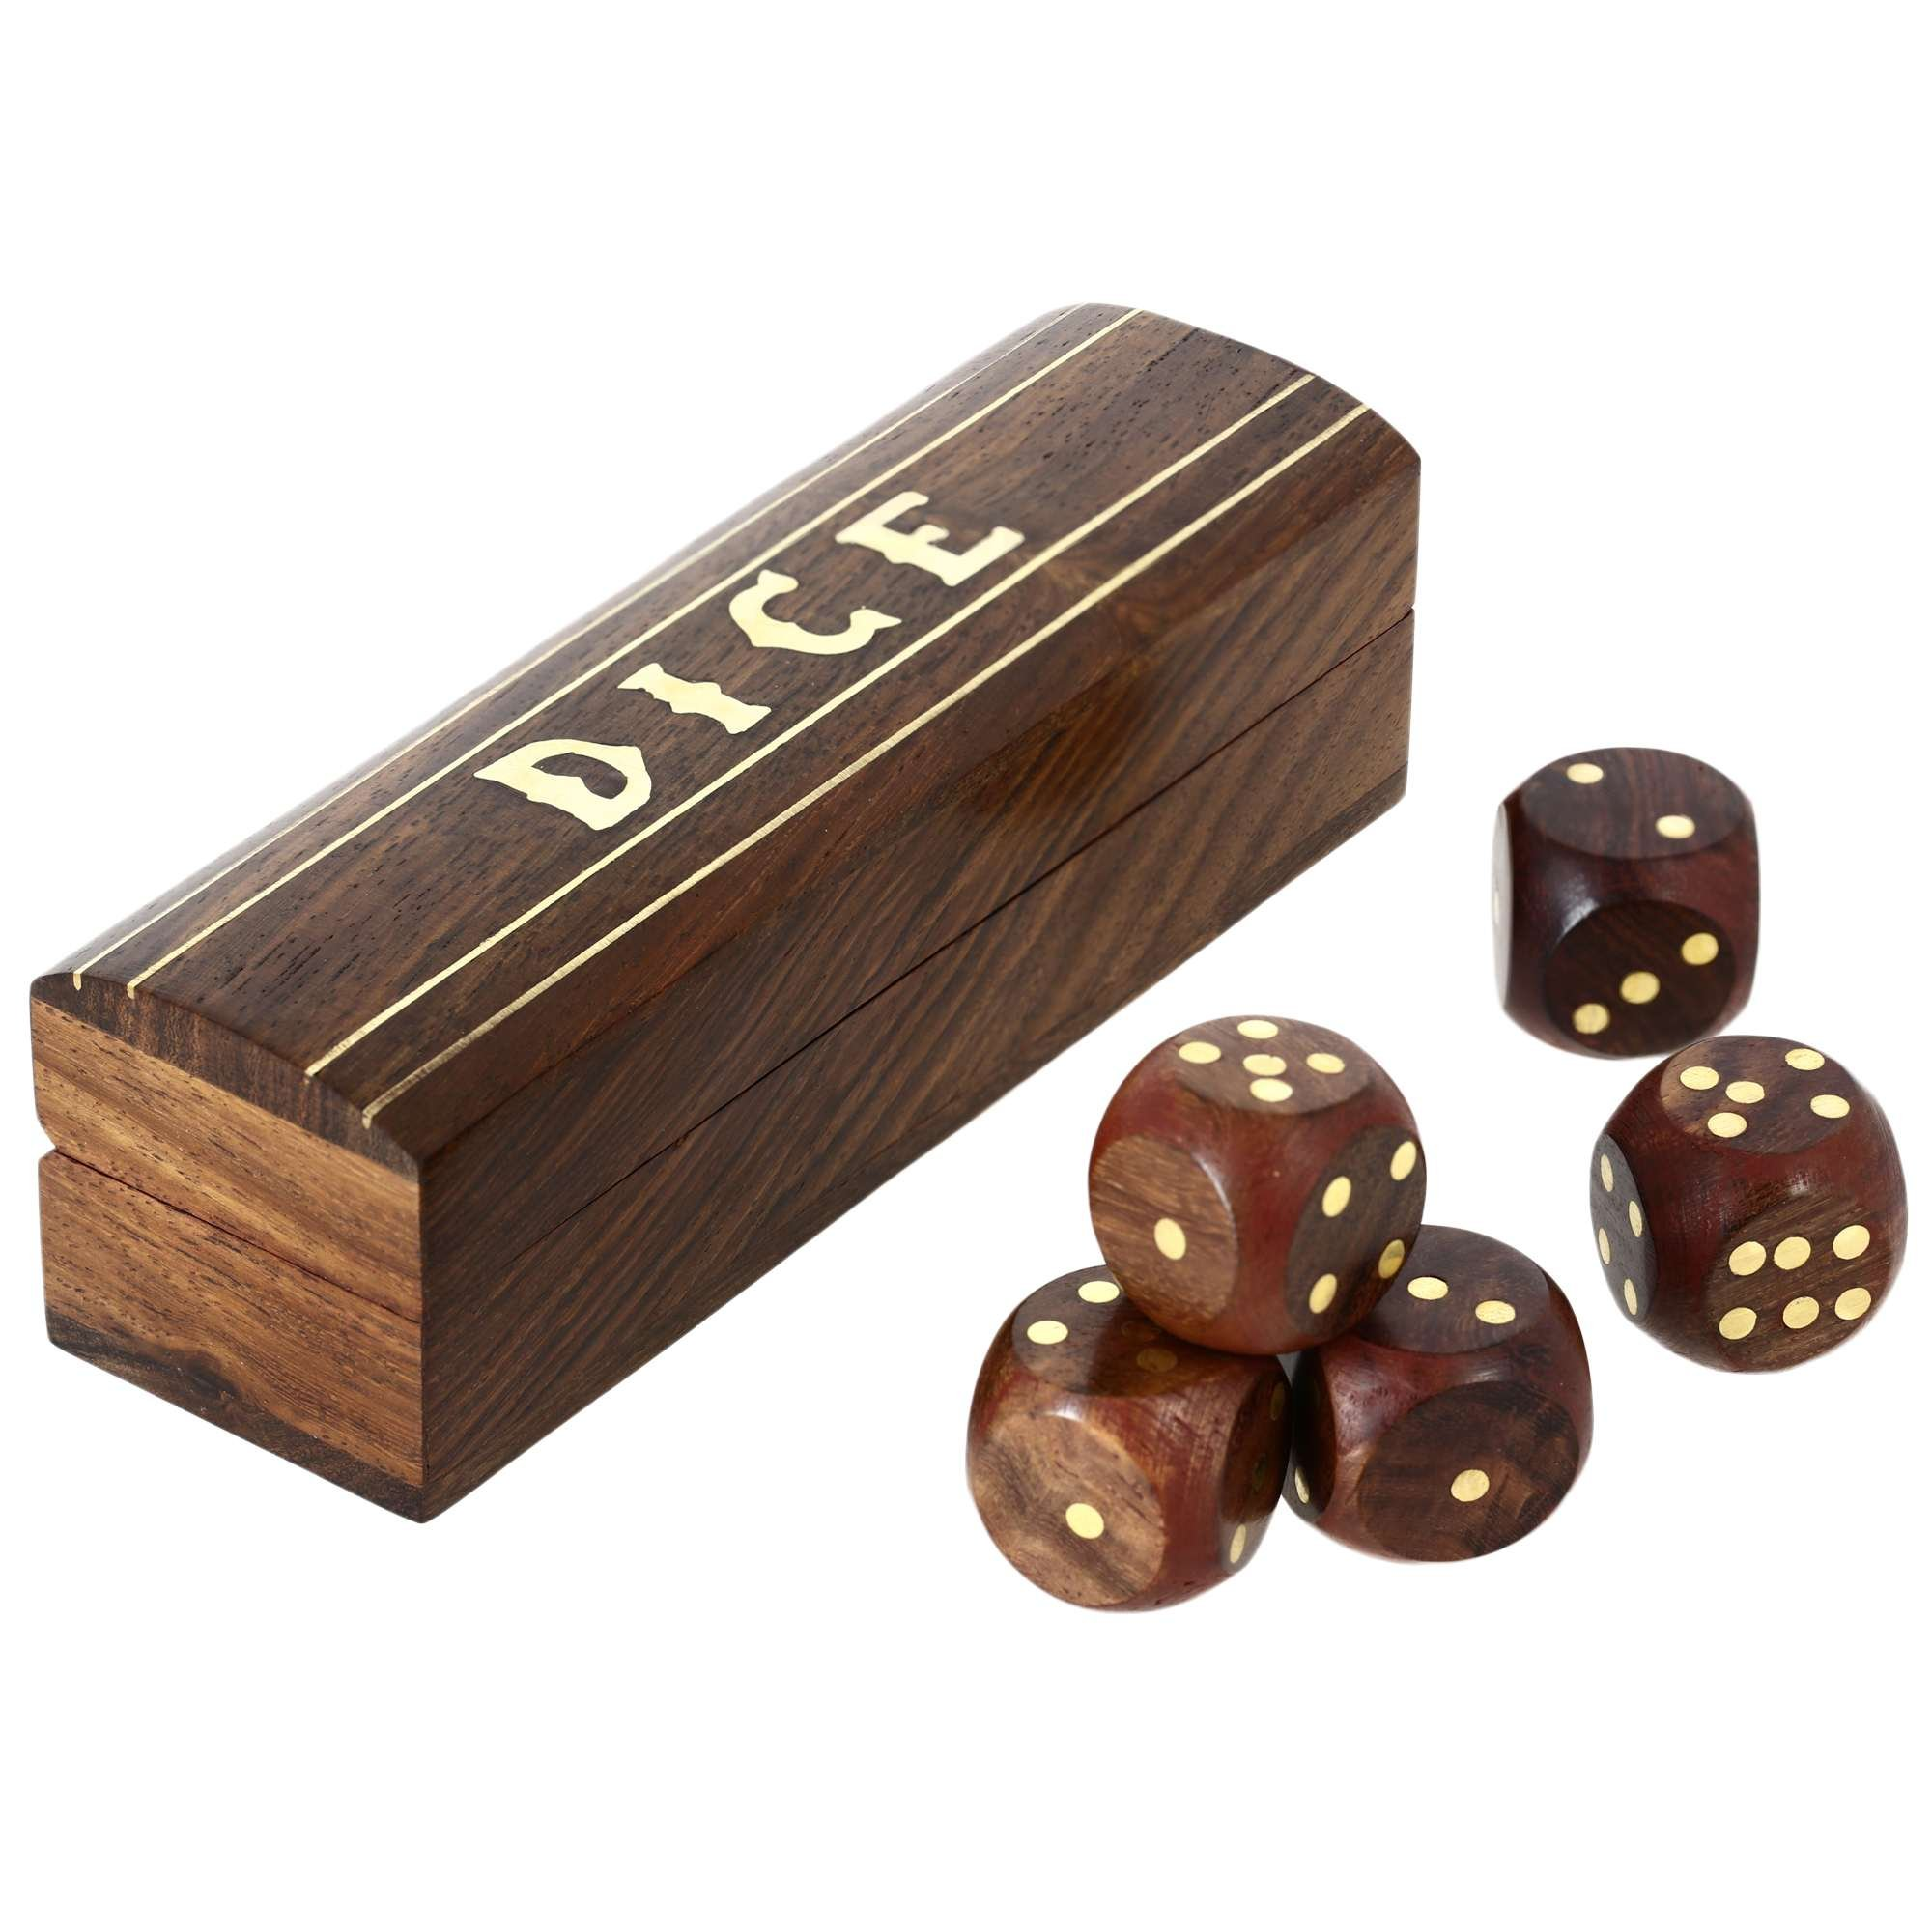 48 Units of ShalinIndia Handmade Indian Wooden Dice Game Storage Decorative Box with Brass Inlay and 5 dices